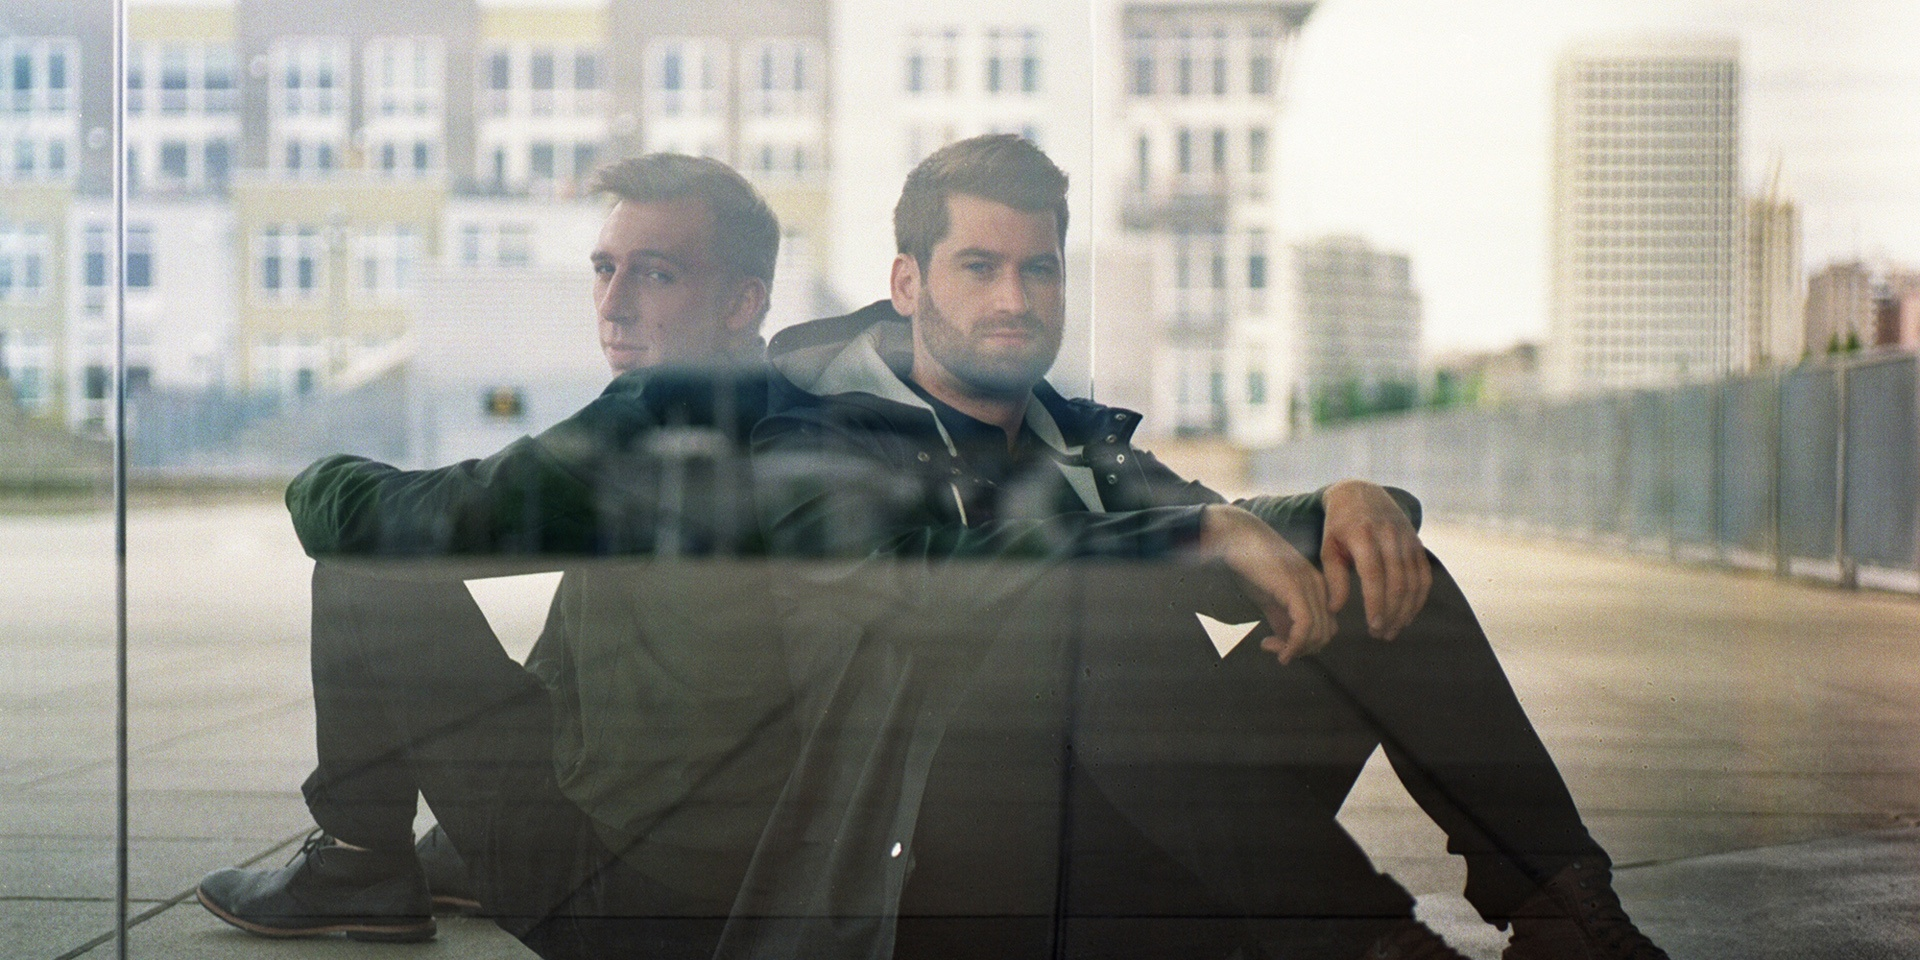 ODESZA to perform in Singapore for the first time in July